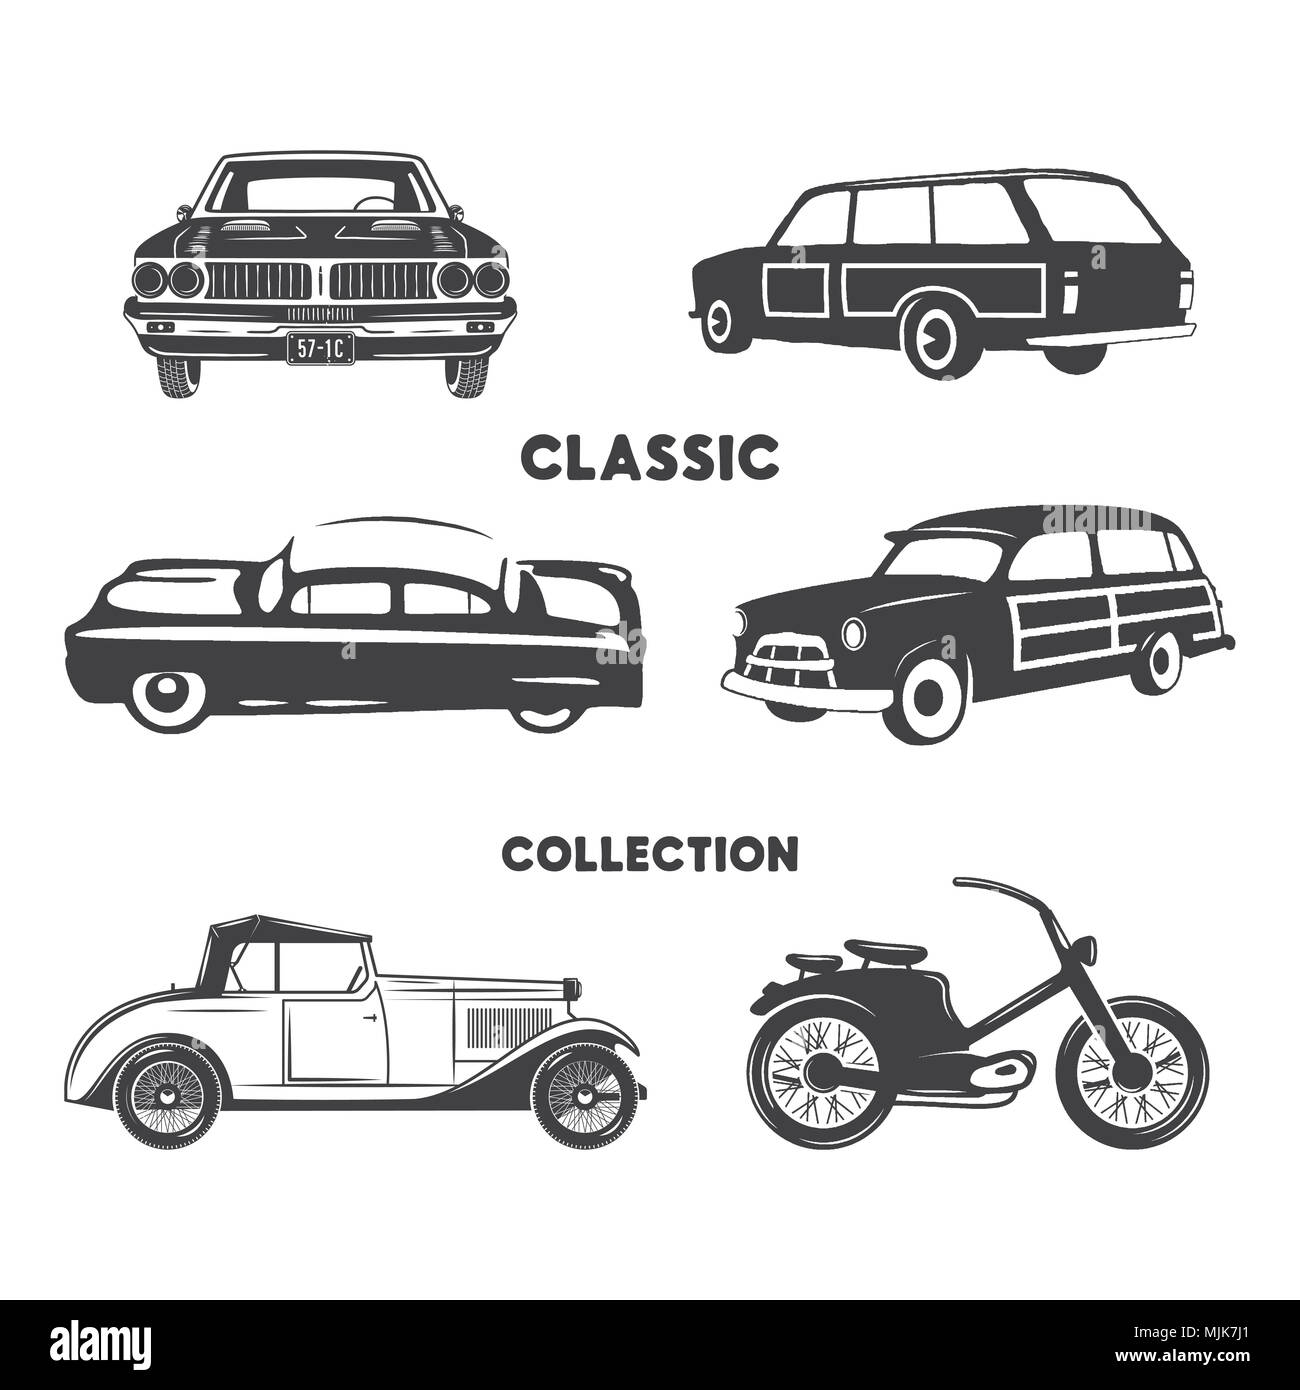 Classic cars, vintage car icons, symbols set.Vintage hand drawn cars, muscle, motorcycle elements. Use for logo, labels, t-shirt prints, tee graphics. Stock design isolated on white background. - Stock Image